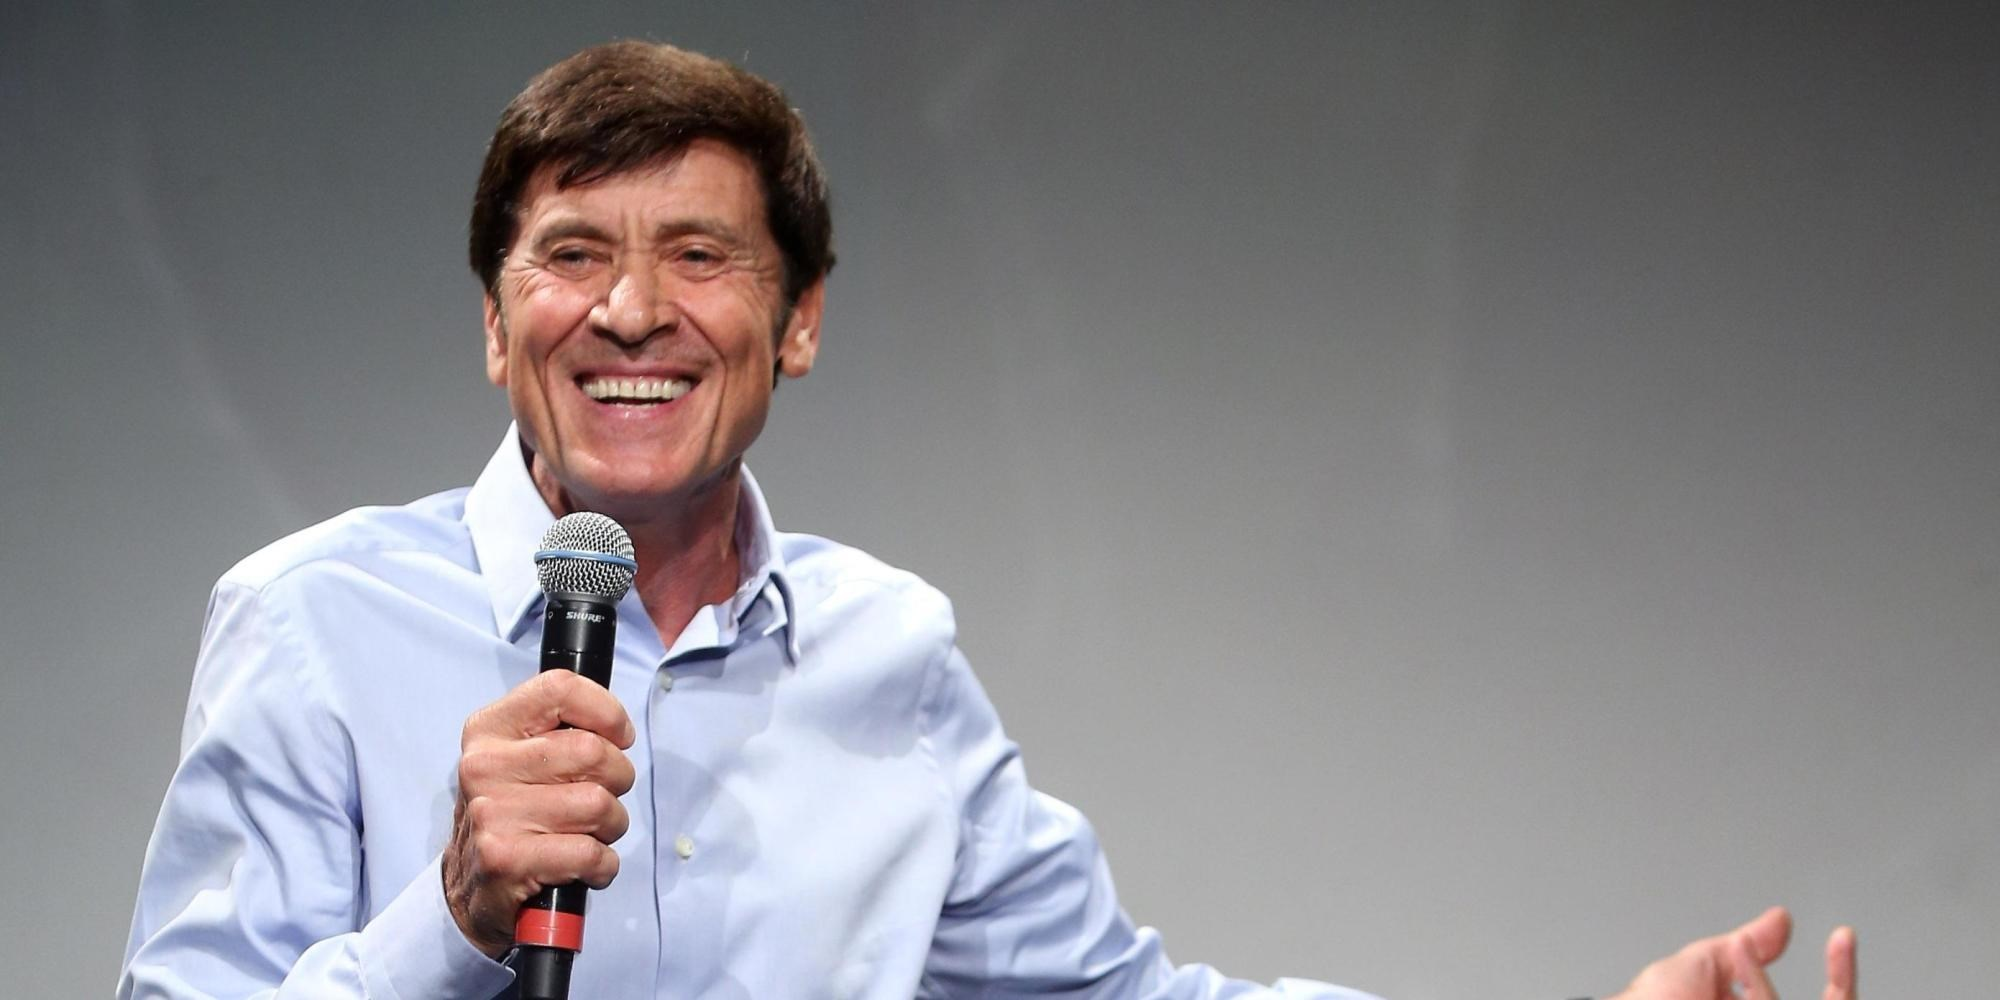 gianni morandi - photo #21